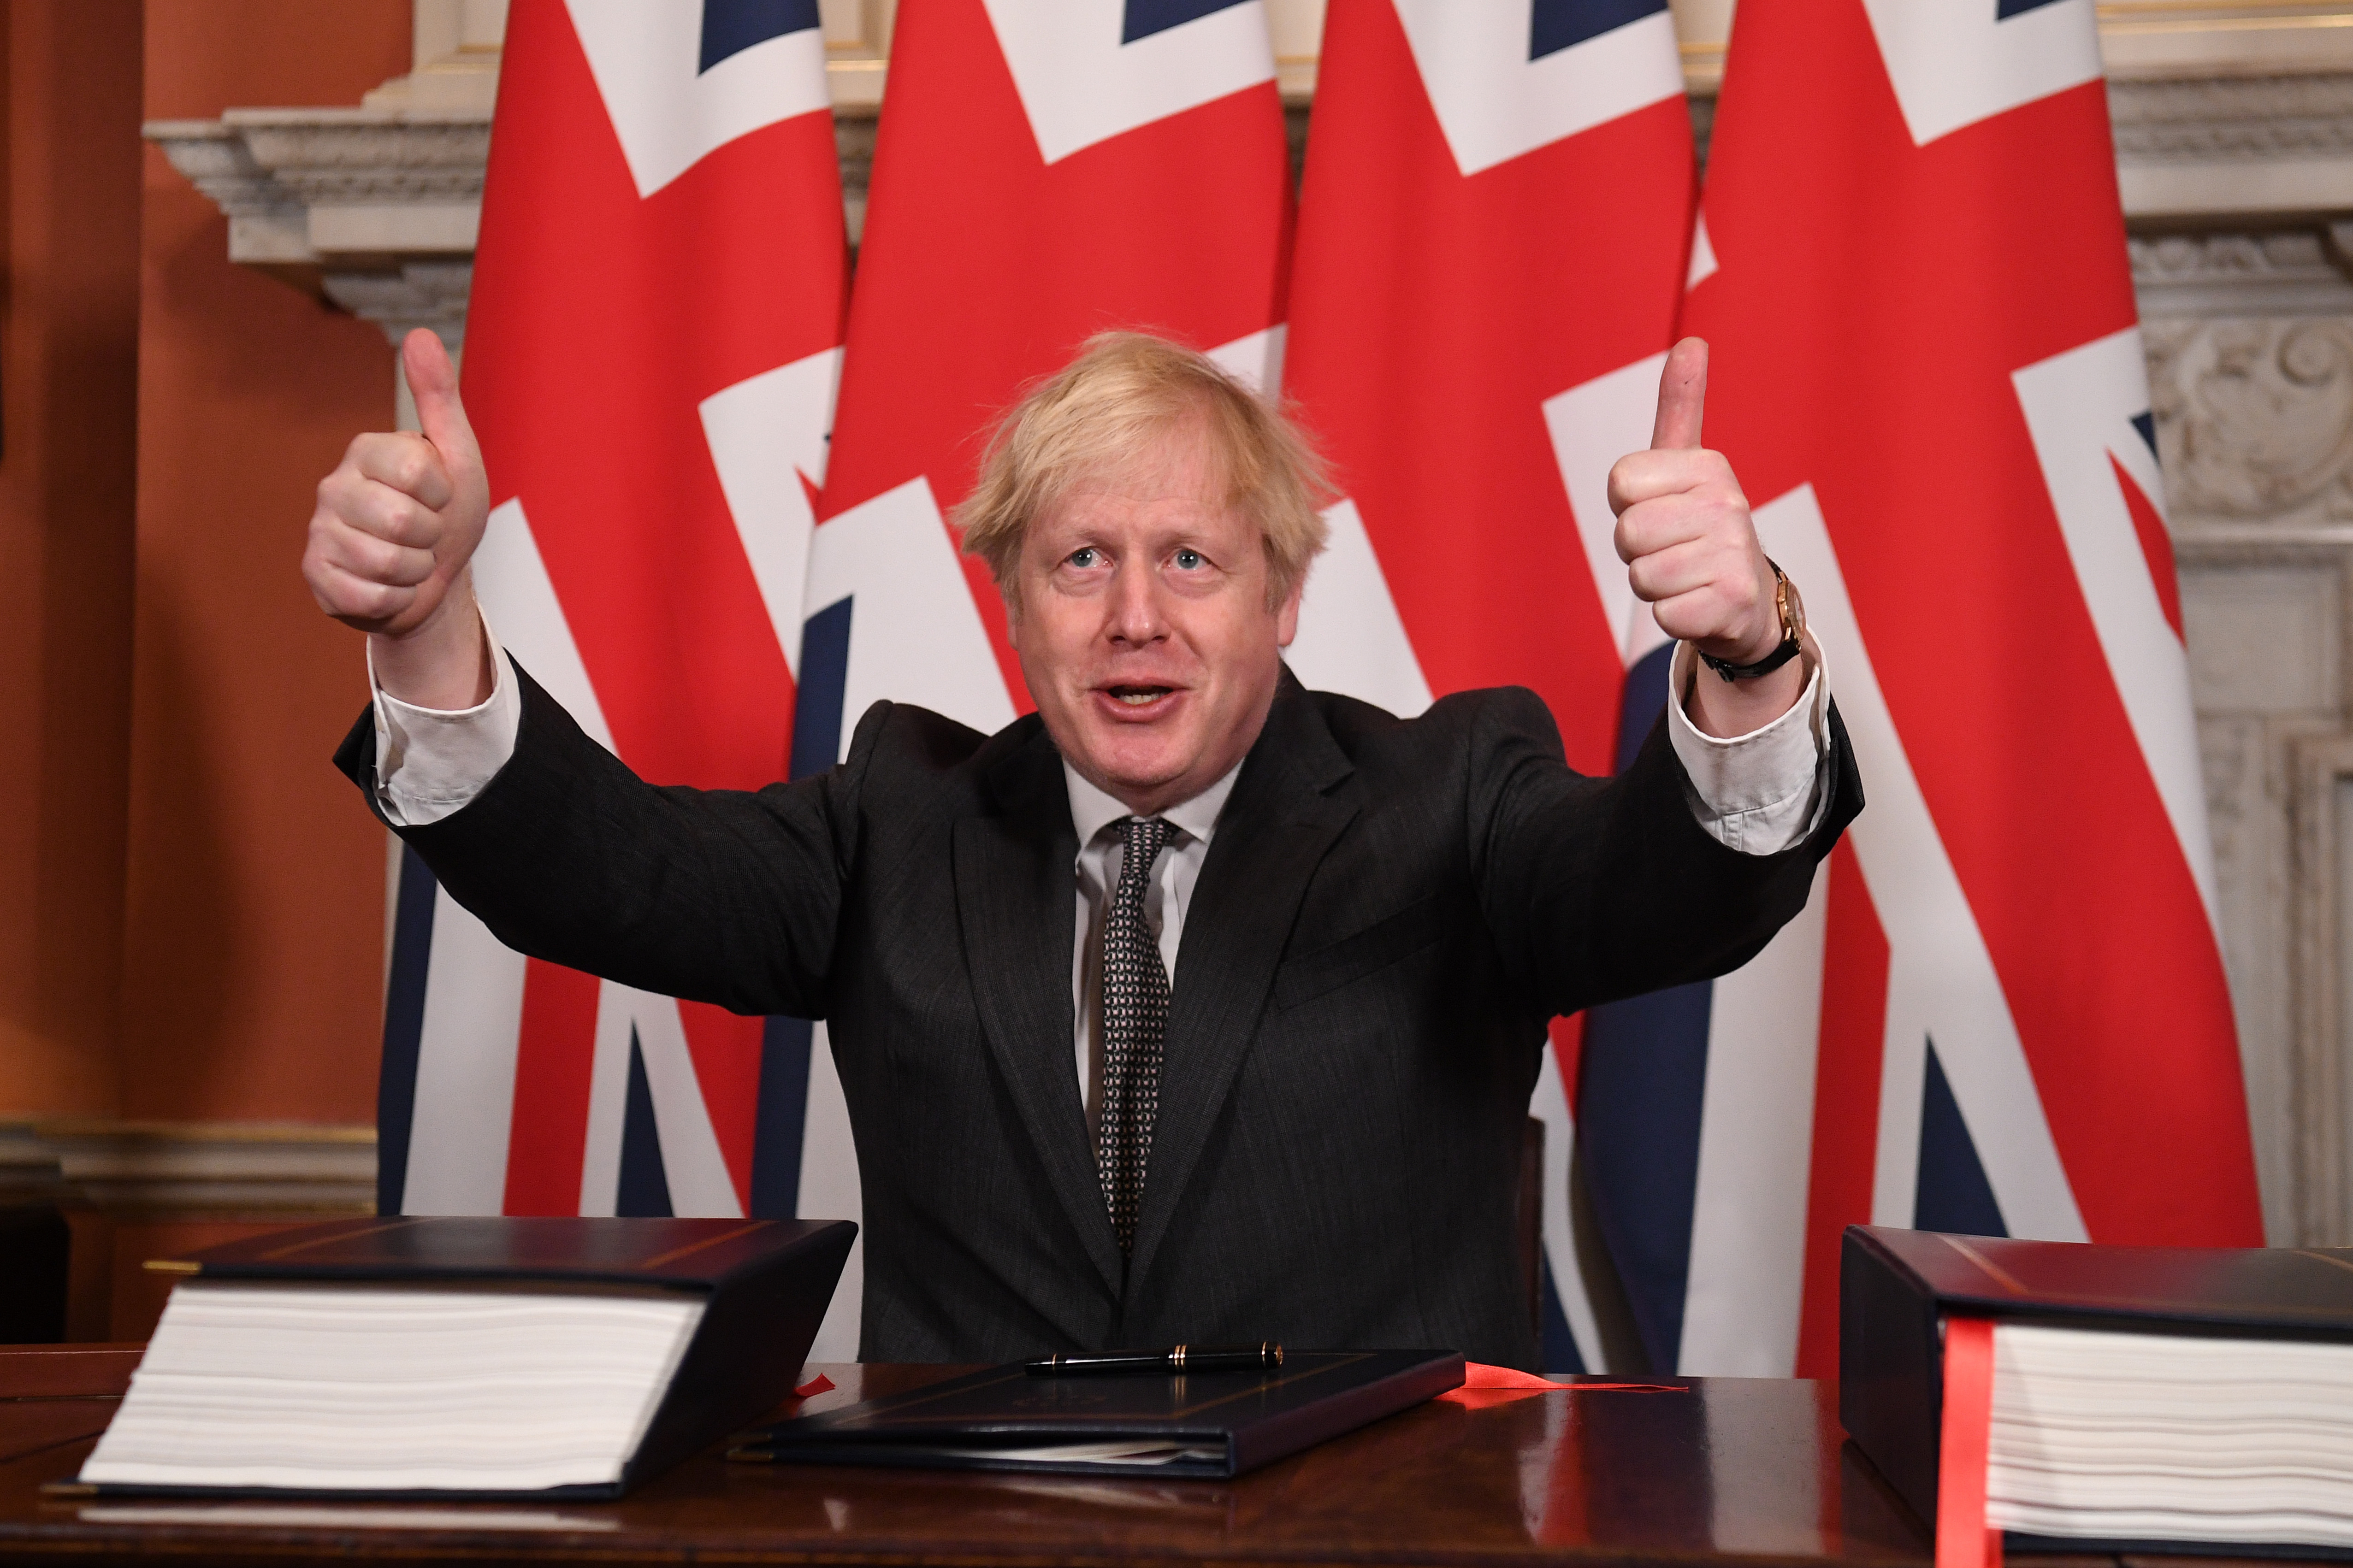 Prime Minister Boris Johnson gives a thumbs up gesture after signing the EU-UK Trade and Cooperation Agreement at 10 Downing Street, Westminster.